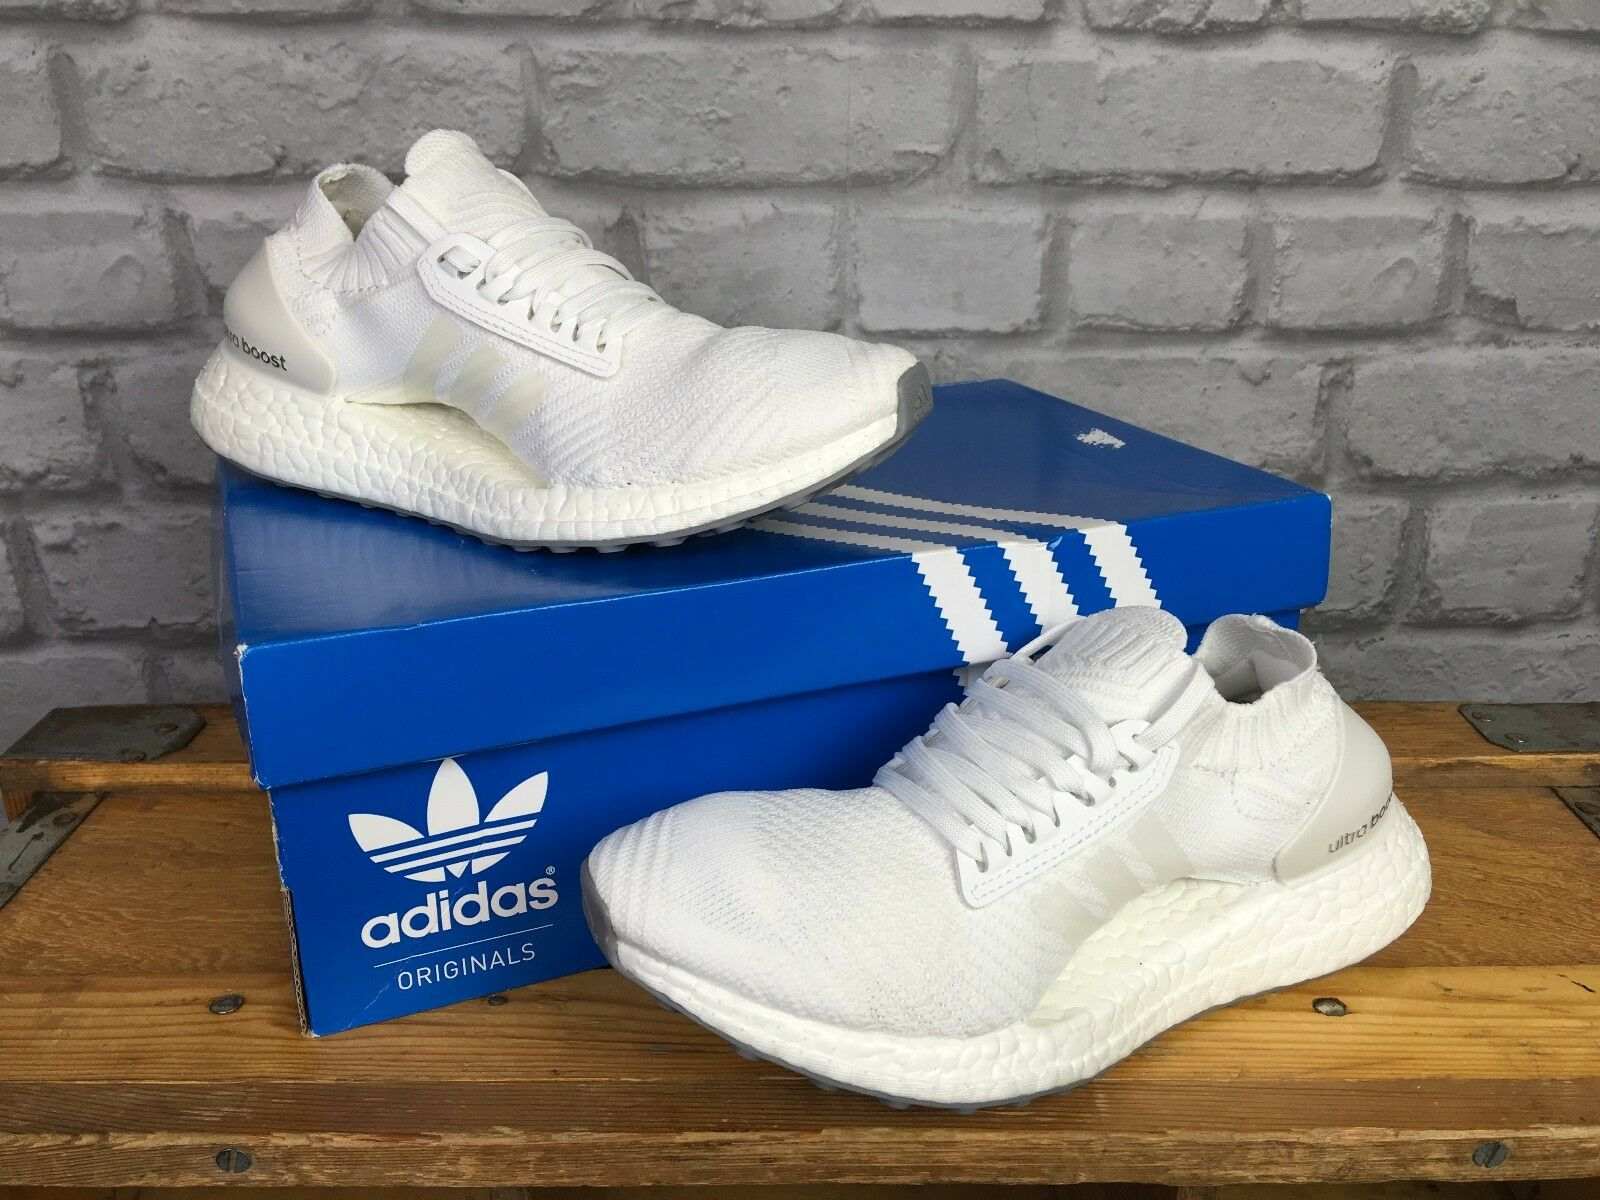 ADIDAS LADIES UK 4 ULTRA BOOST X PRIMEKNIT WHITE CRYSTAL WHITE TRAINERS  £150